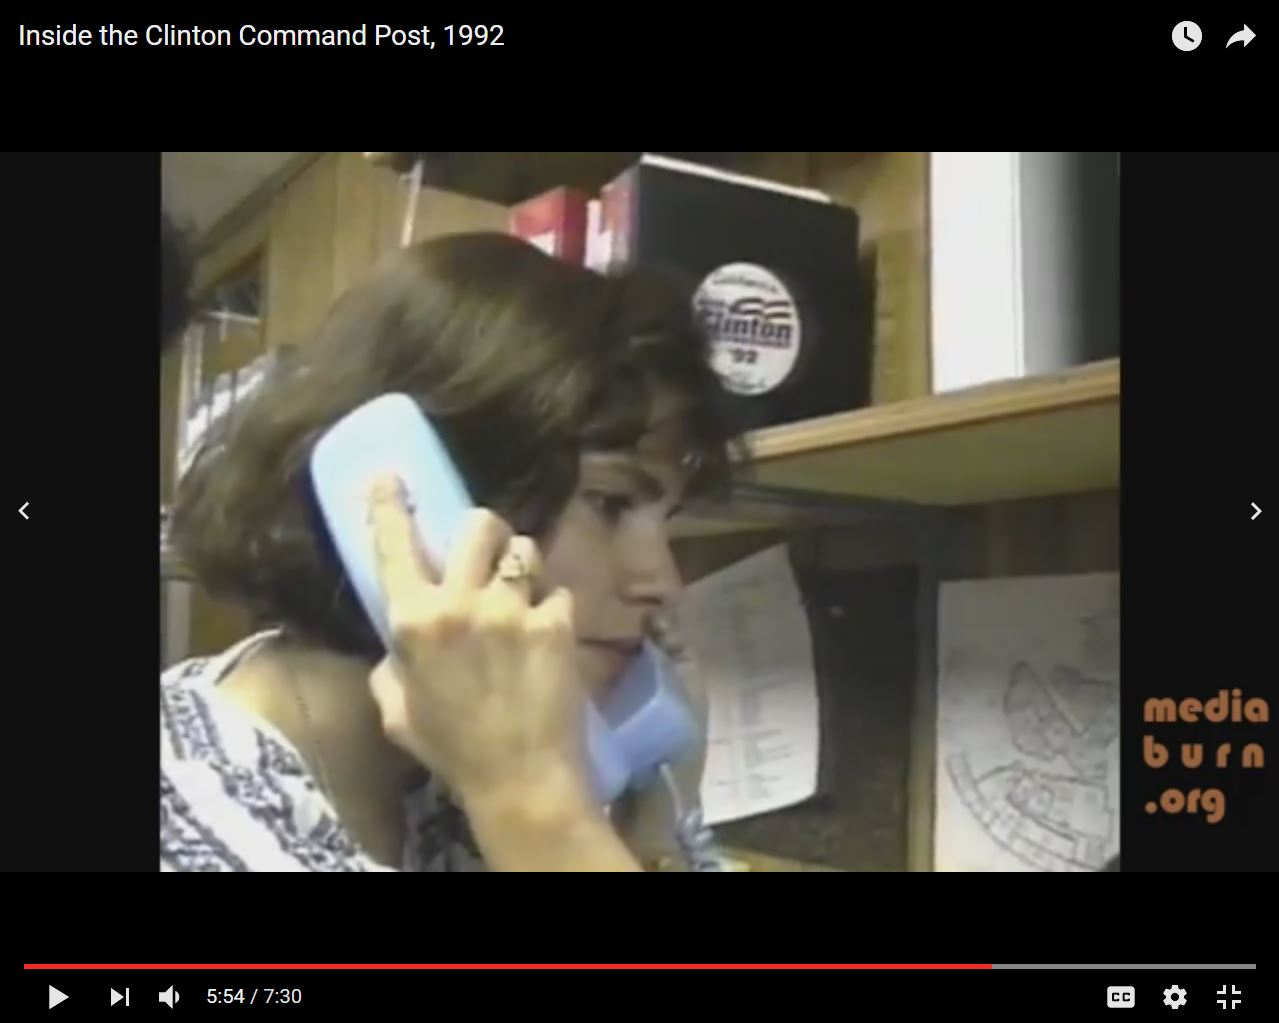 Inside the Clinton Command Center, DNC '92